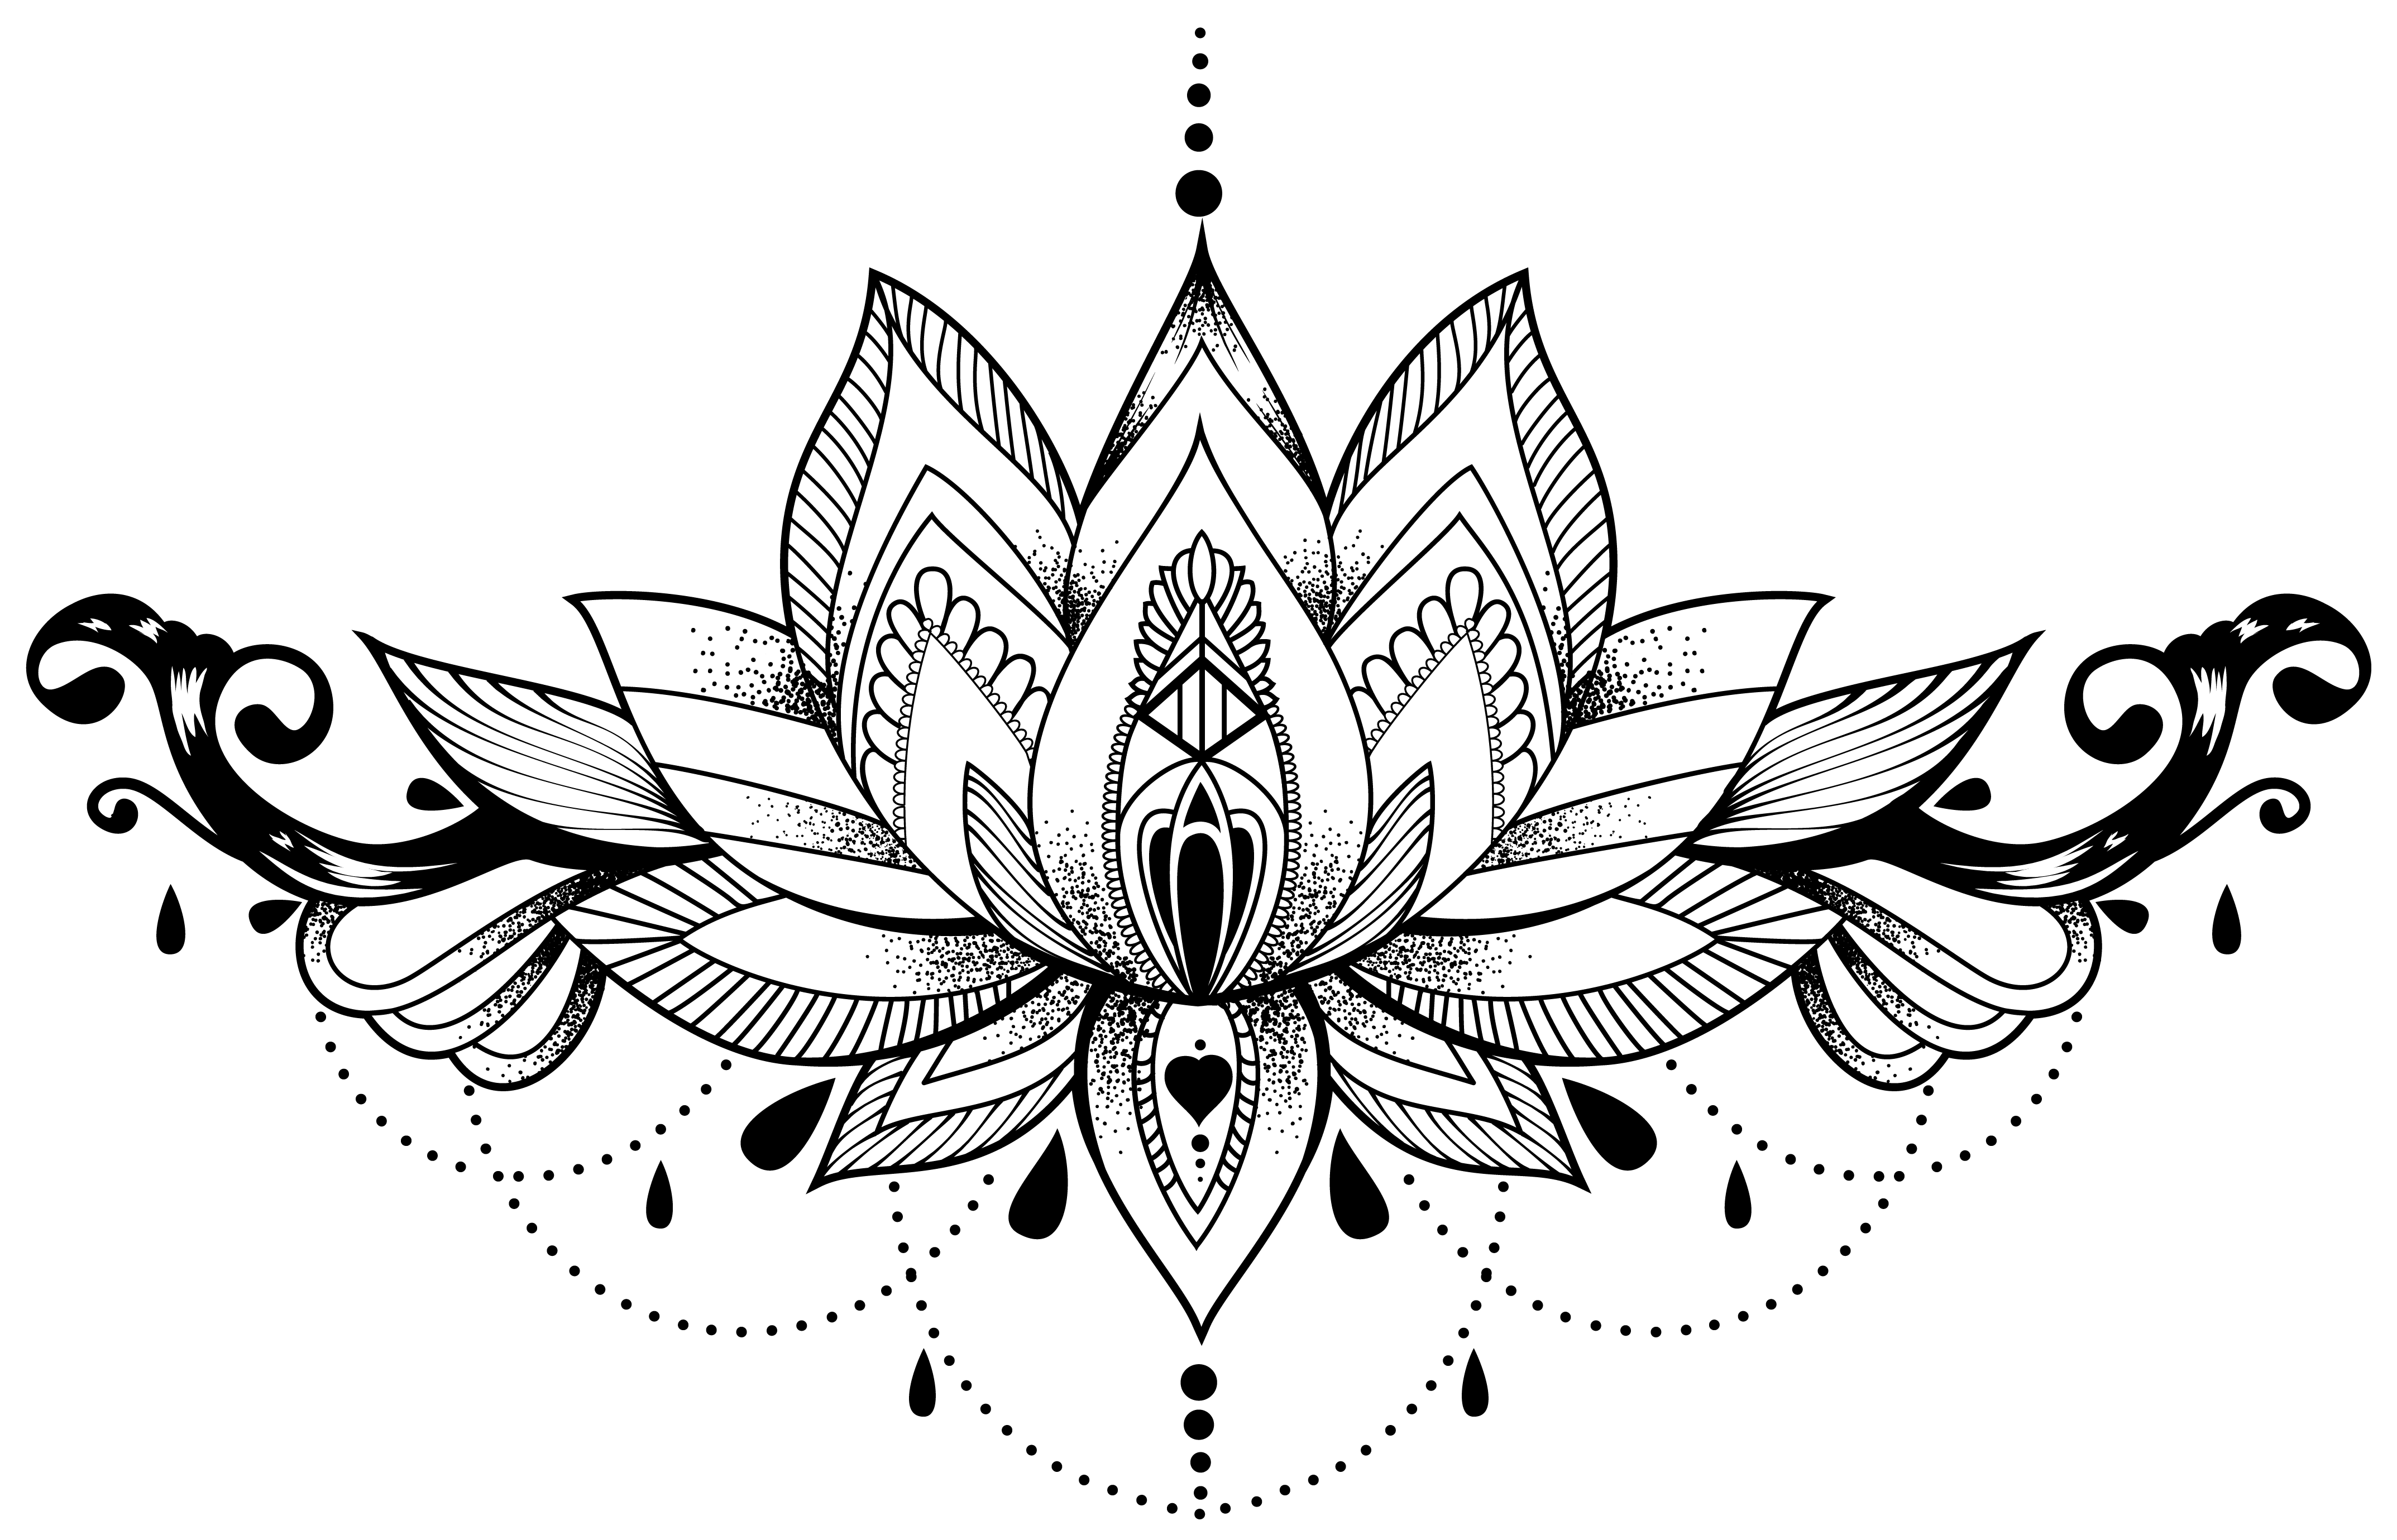 Lotus tattoo png. Chandelier pinterest chandeliers and